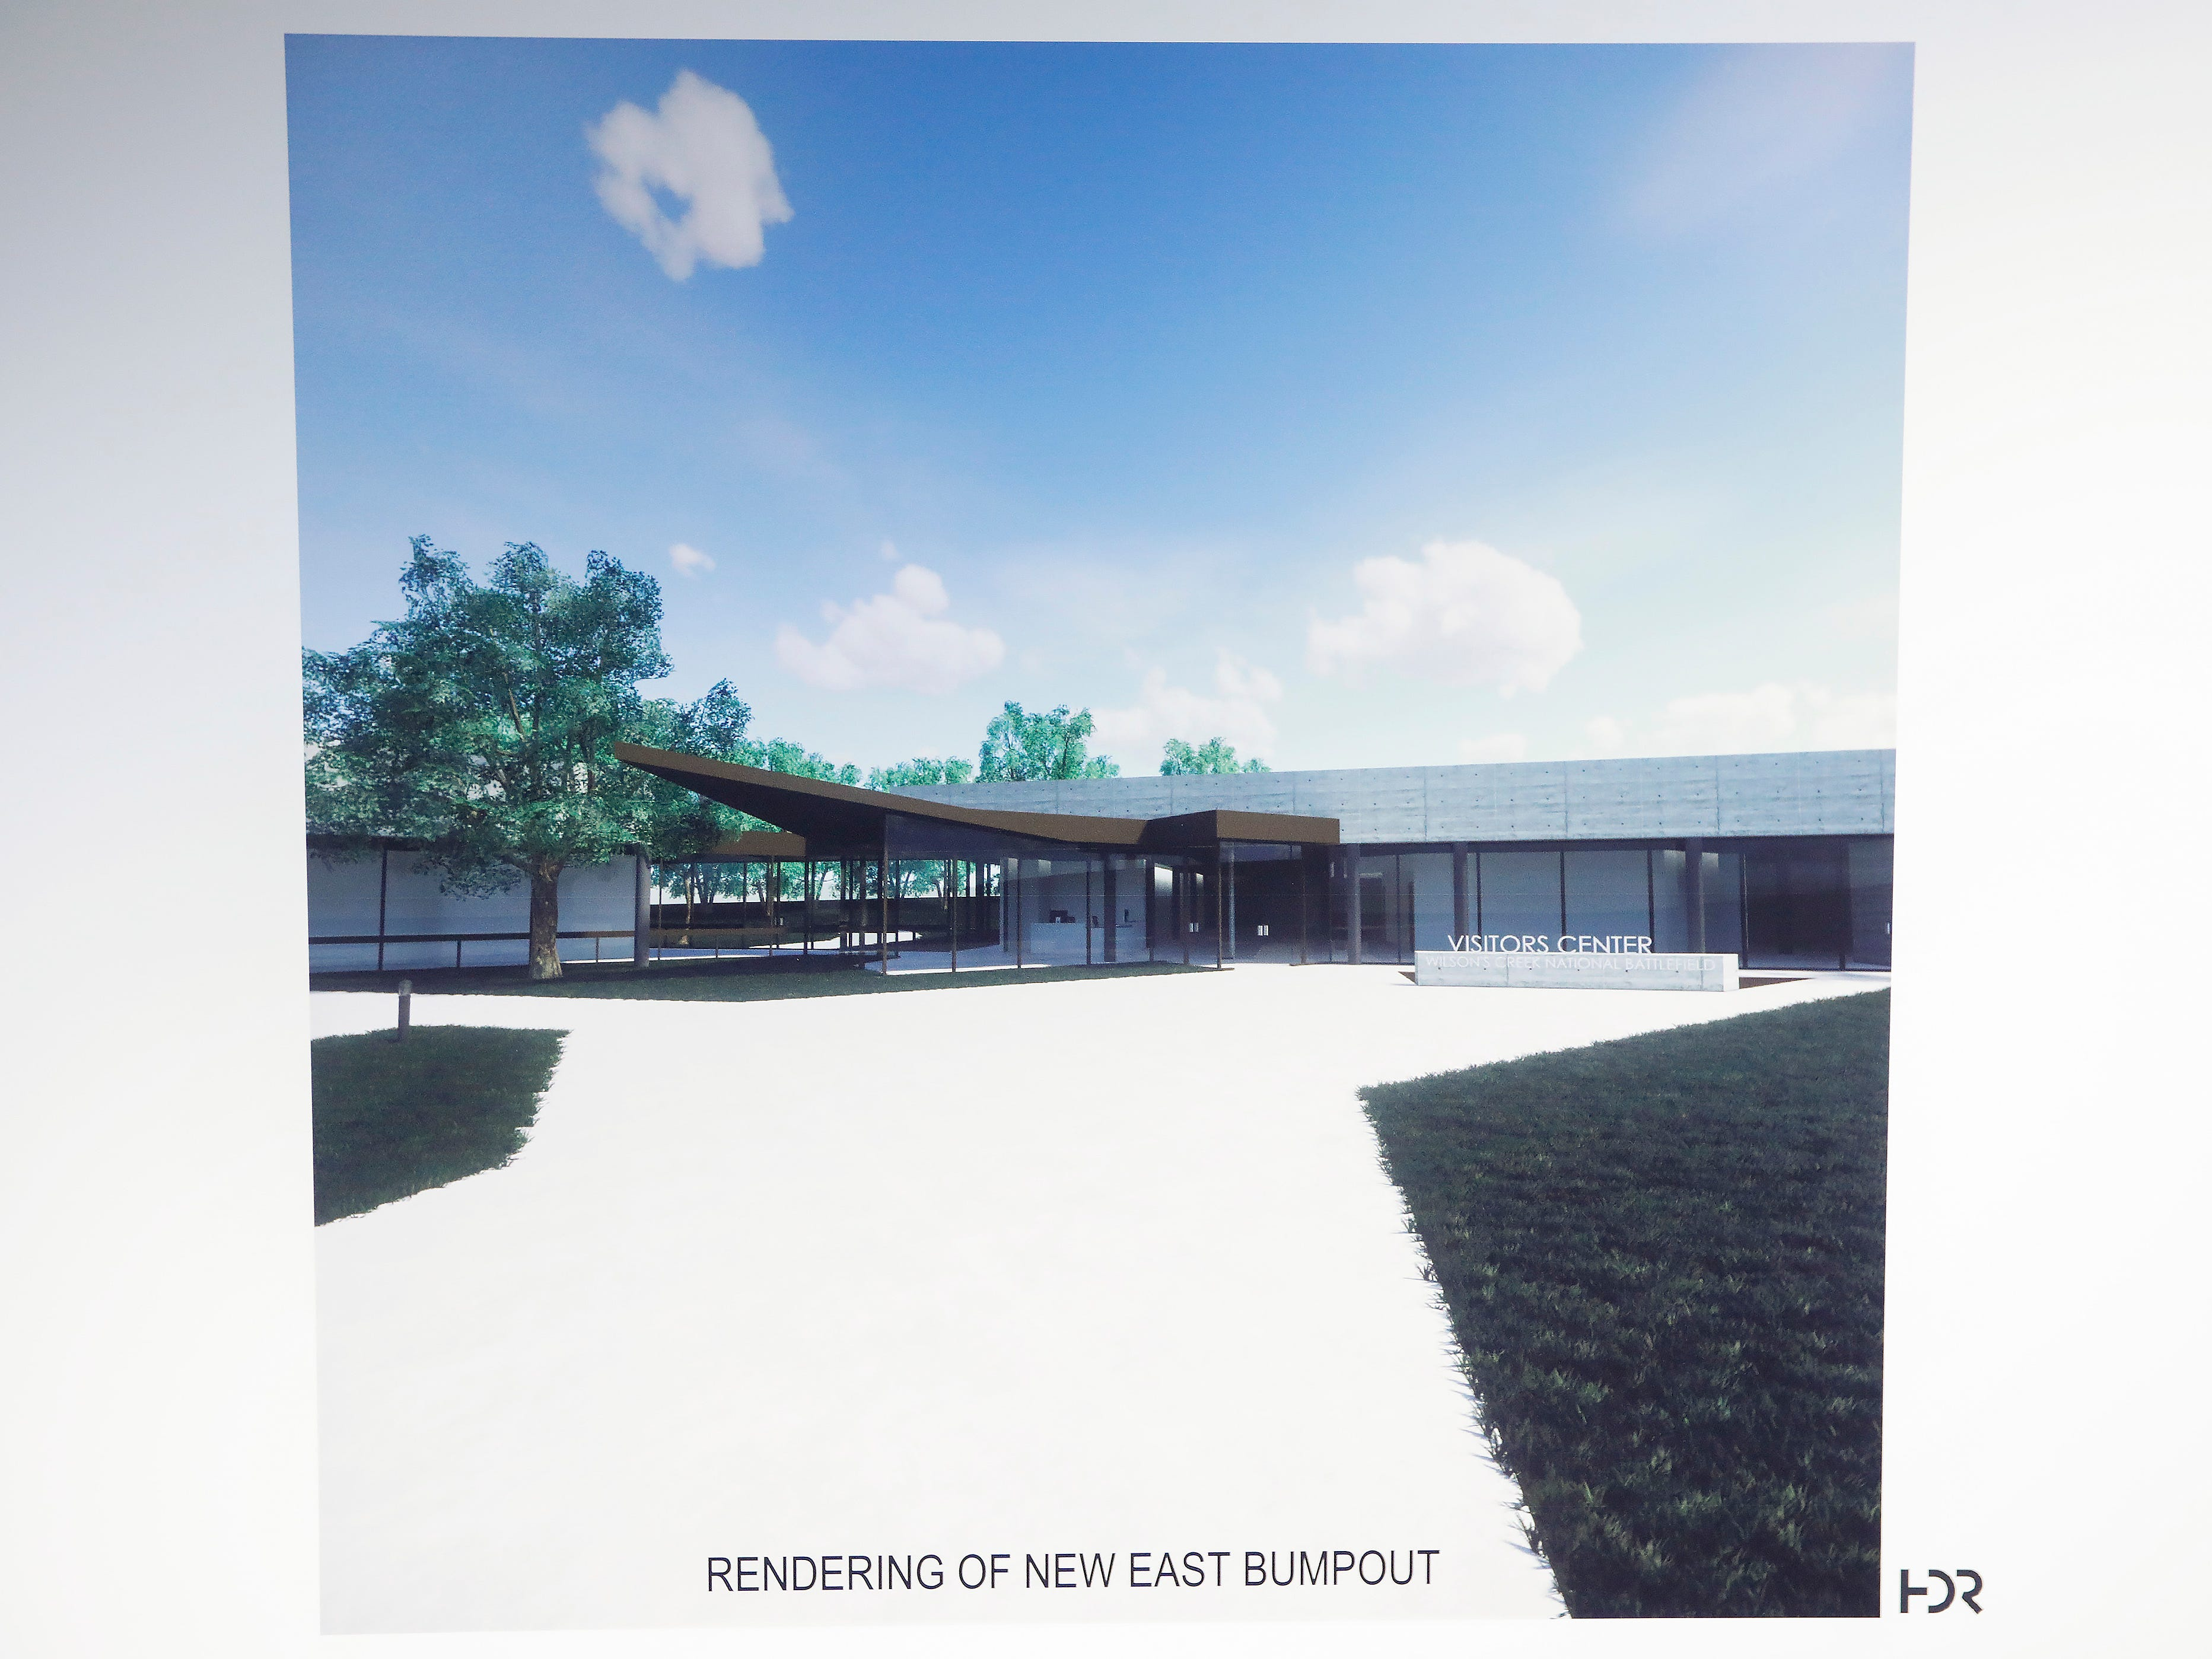 A rendering of what the exterior of the visitors center at Wilson's Creek National Battlefield will look like after renovations are made.